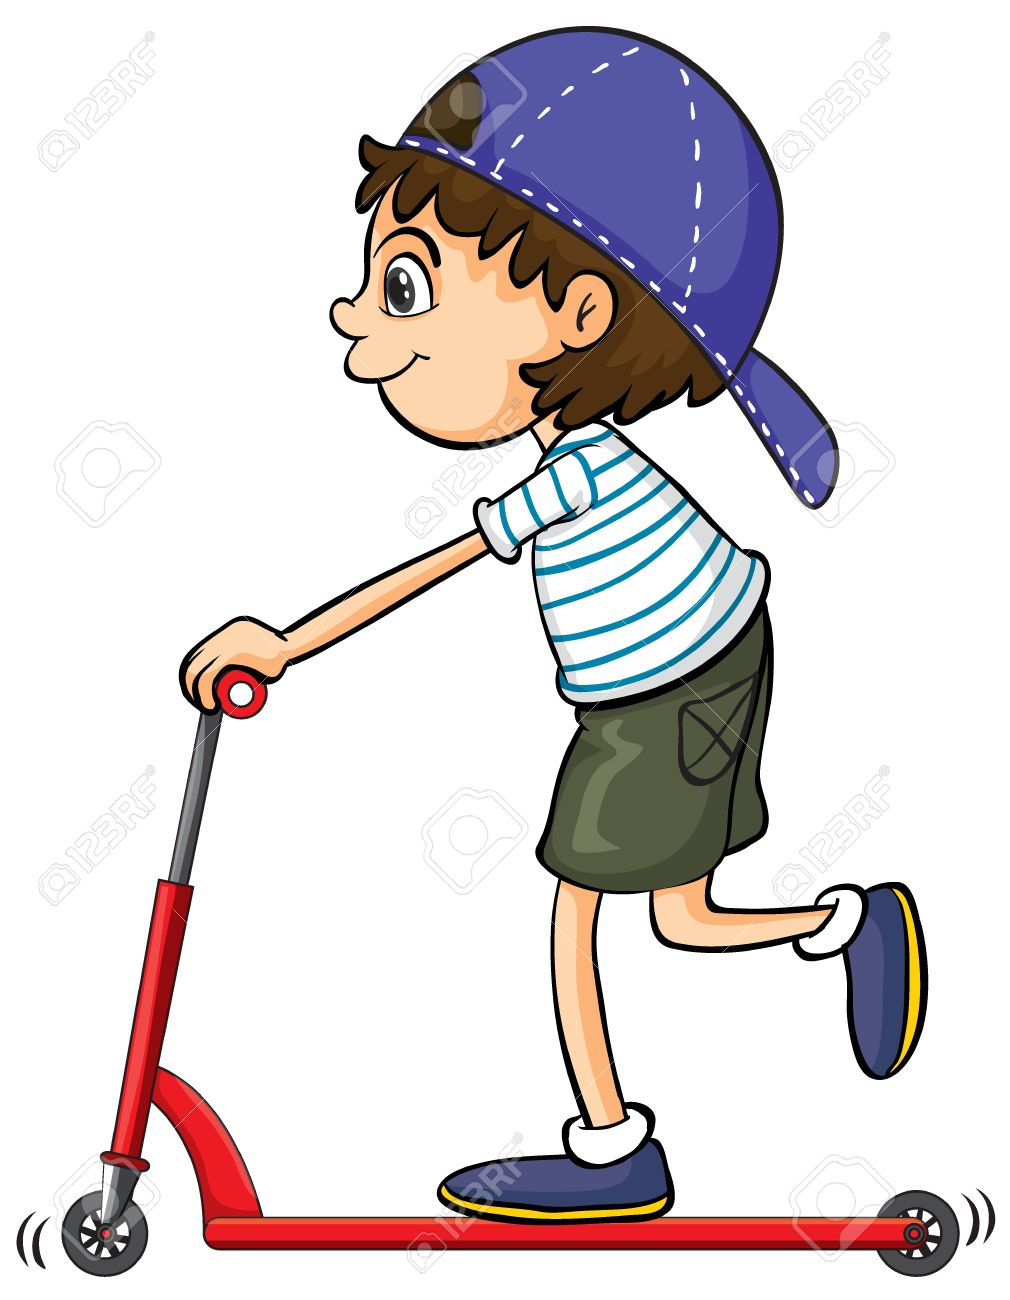 Scooter clipart cute. Collection of free download